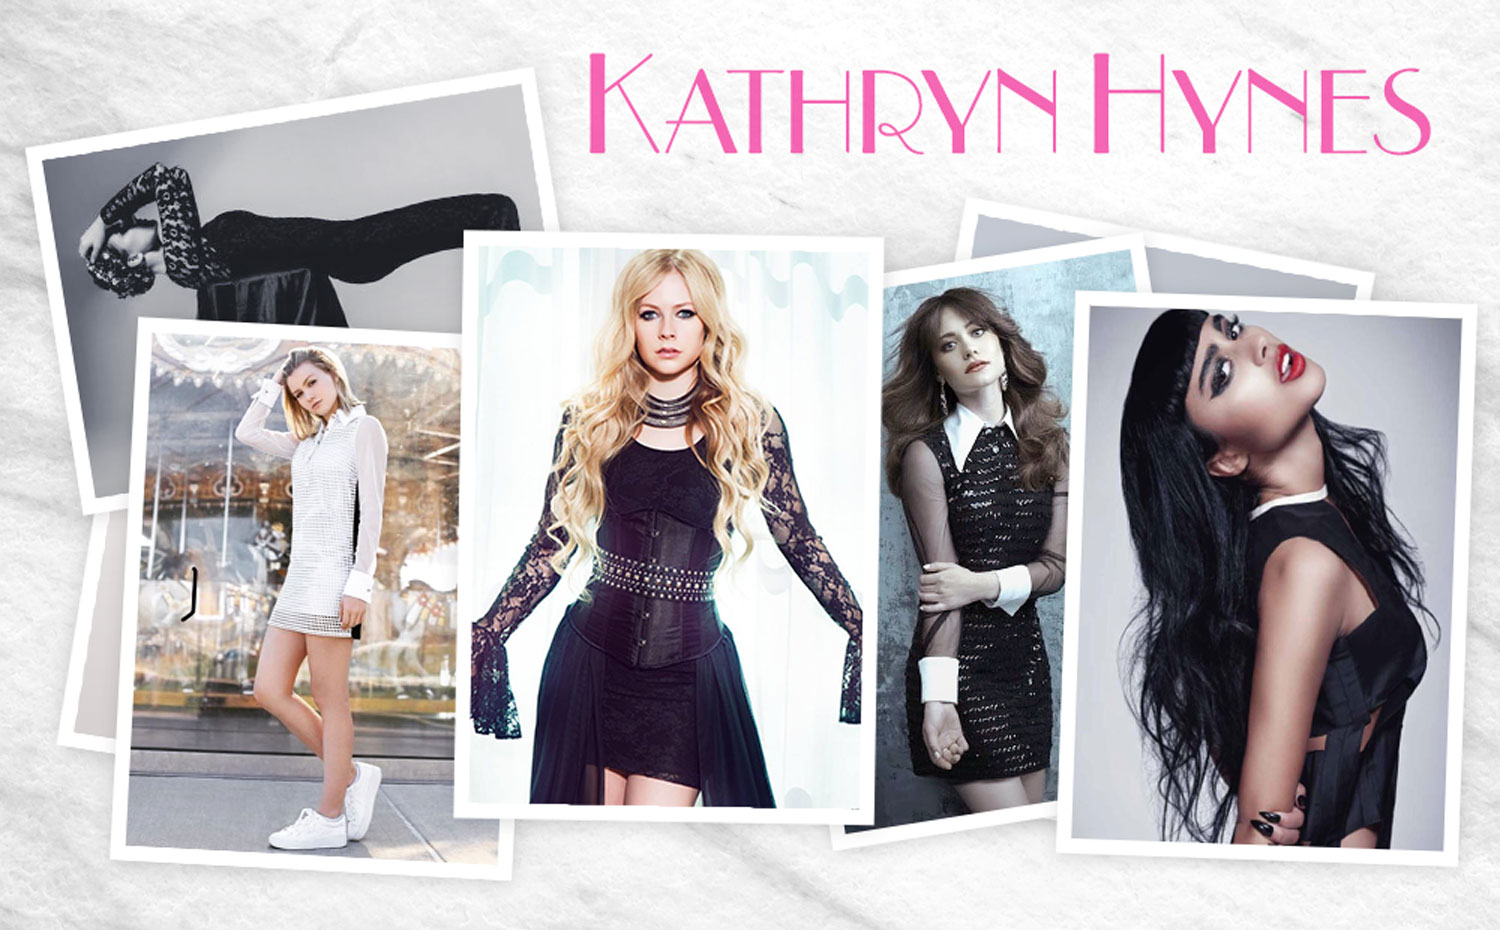 Kathryn Hynes Spring/Summer 2014 Collection